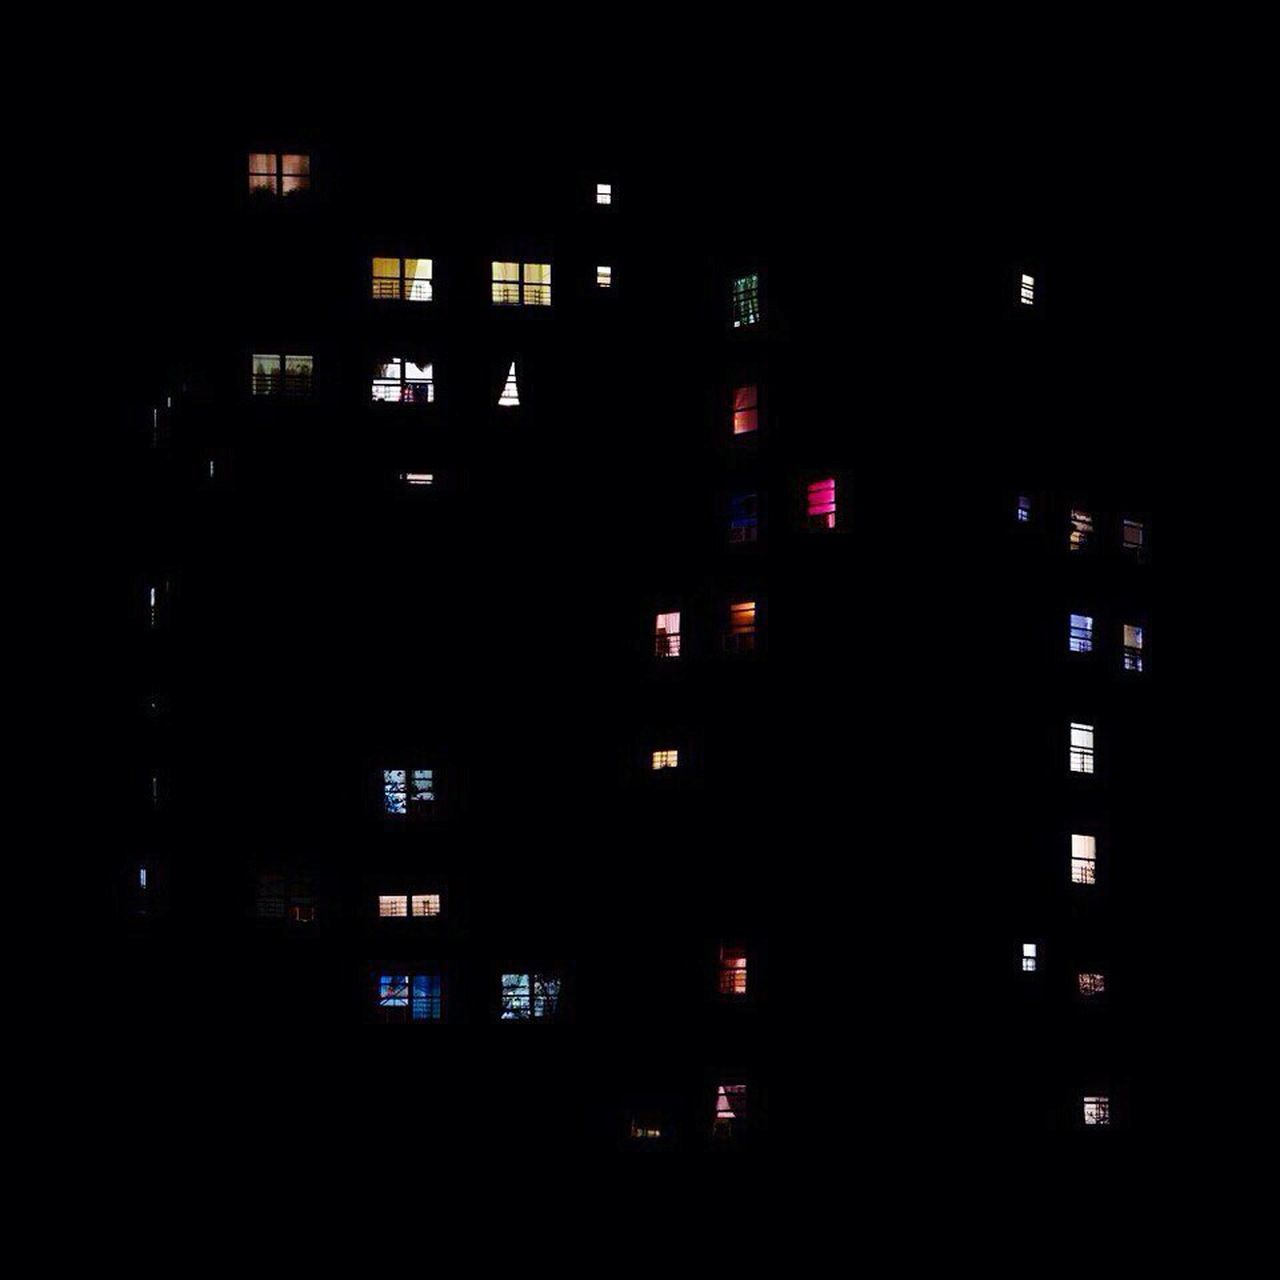 night, illuminated, dark, no people, city, built structure, building exterior, architecture, multi colored, neon, outdoors, close-up